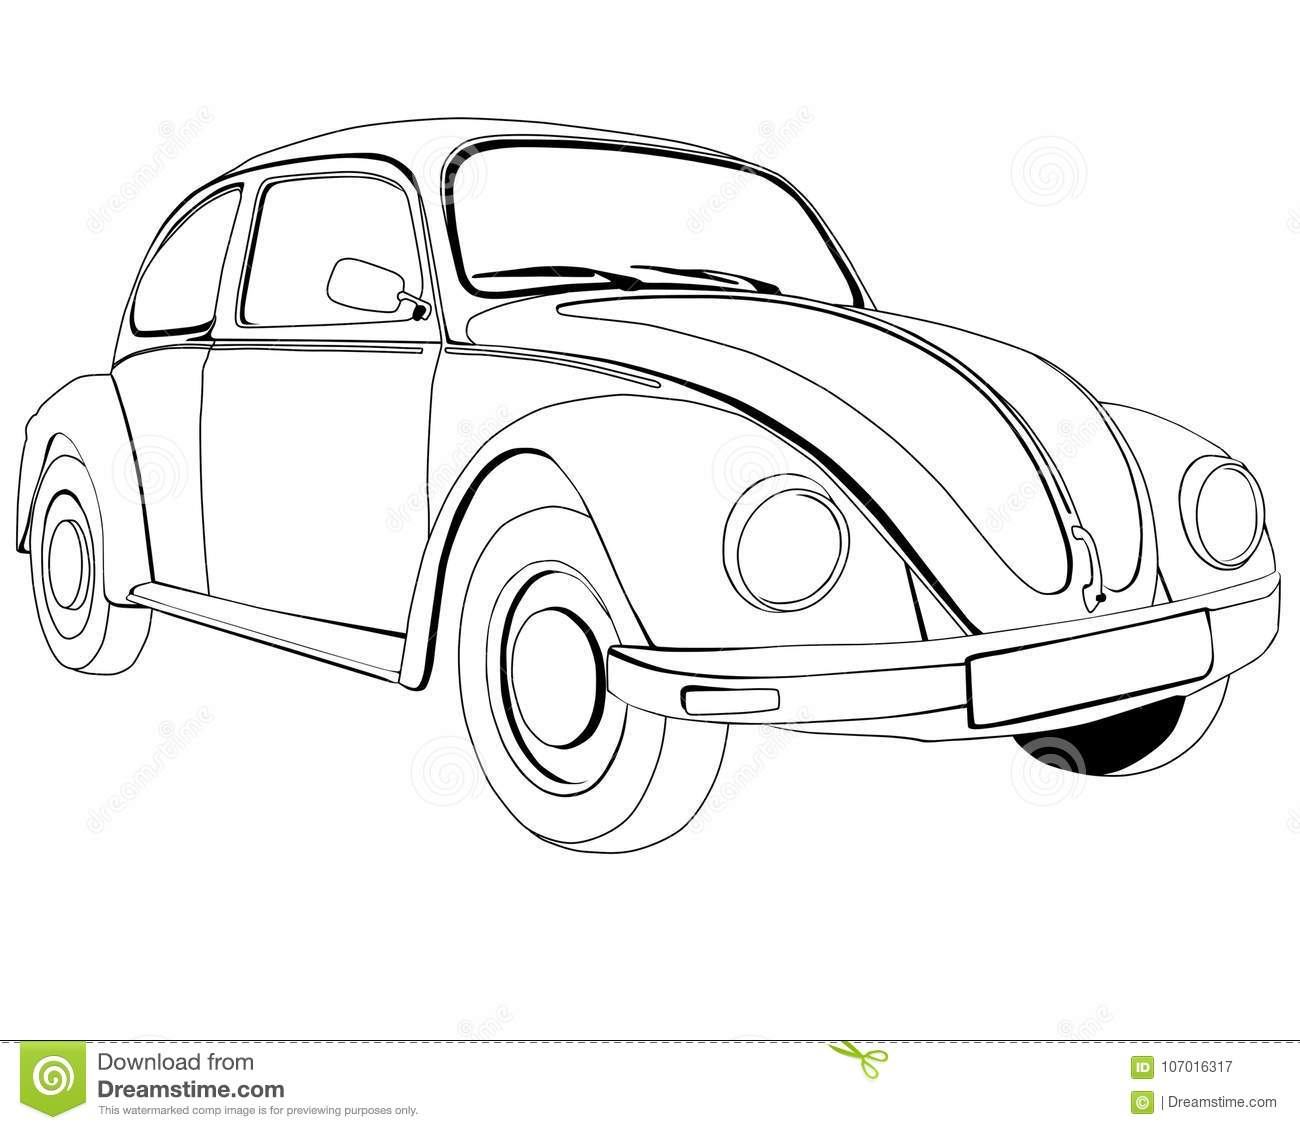 volkswagen cartoons  illustrations  u0026 vector stock images